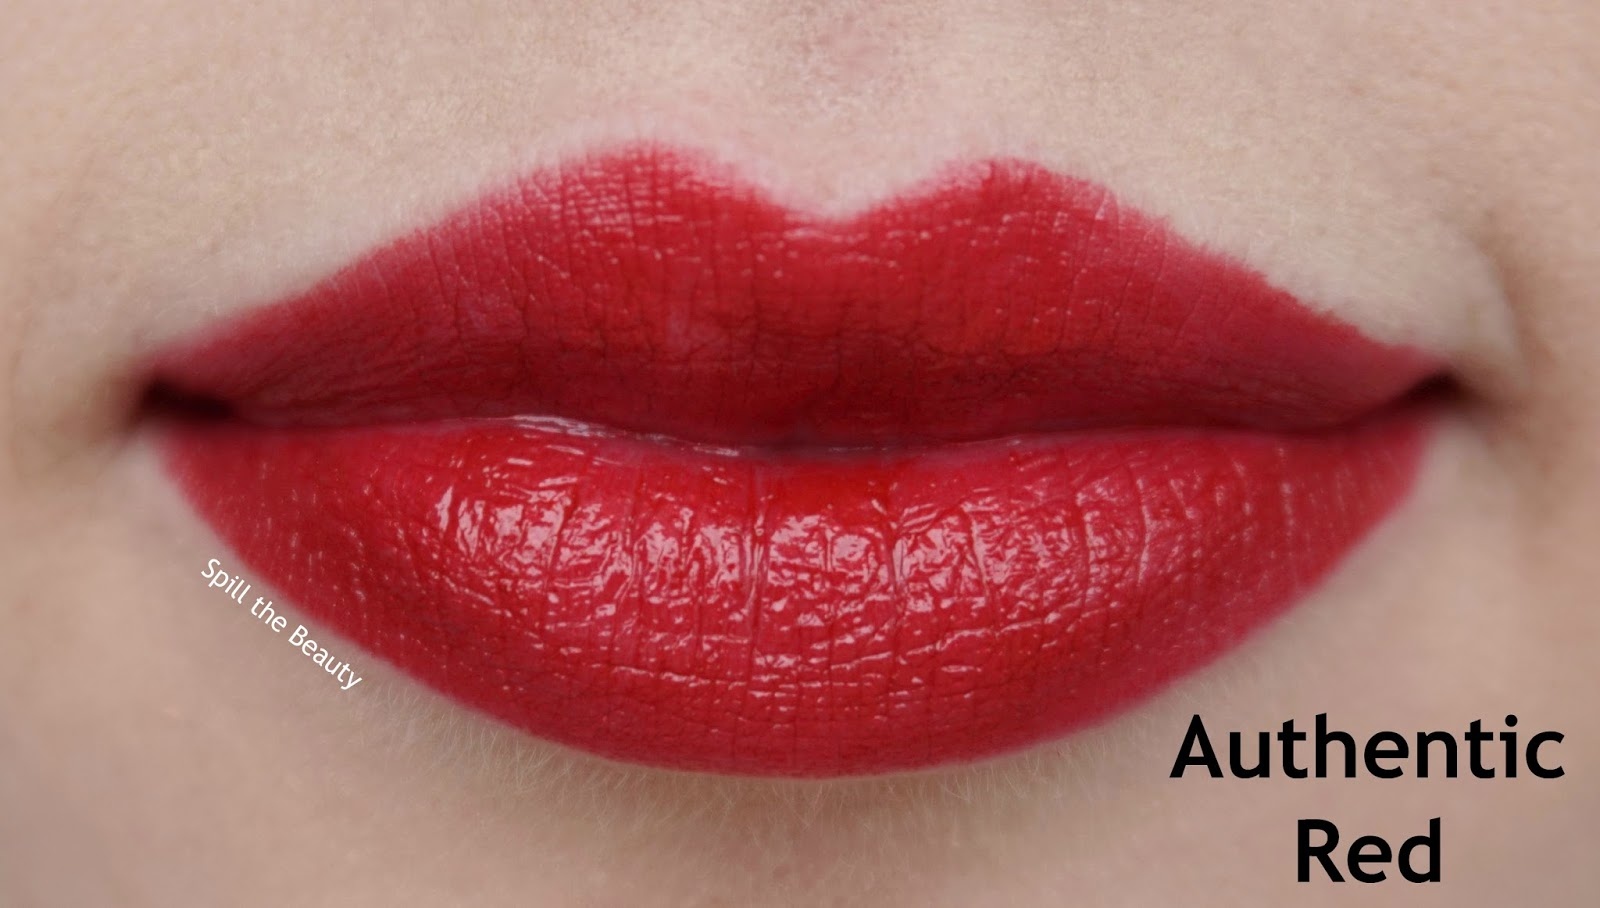 mac caitlyn jenner review swatches authentic red whirl compassion lipstick authentic red lip swatch